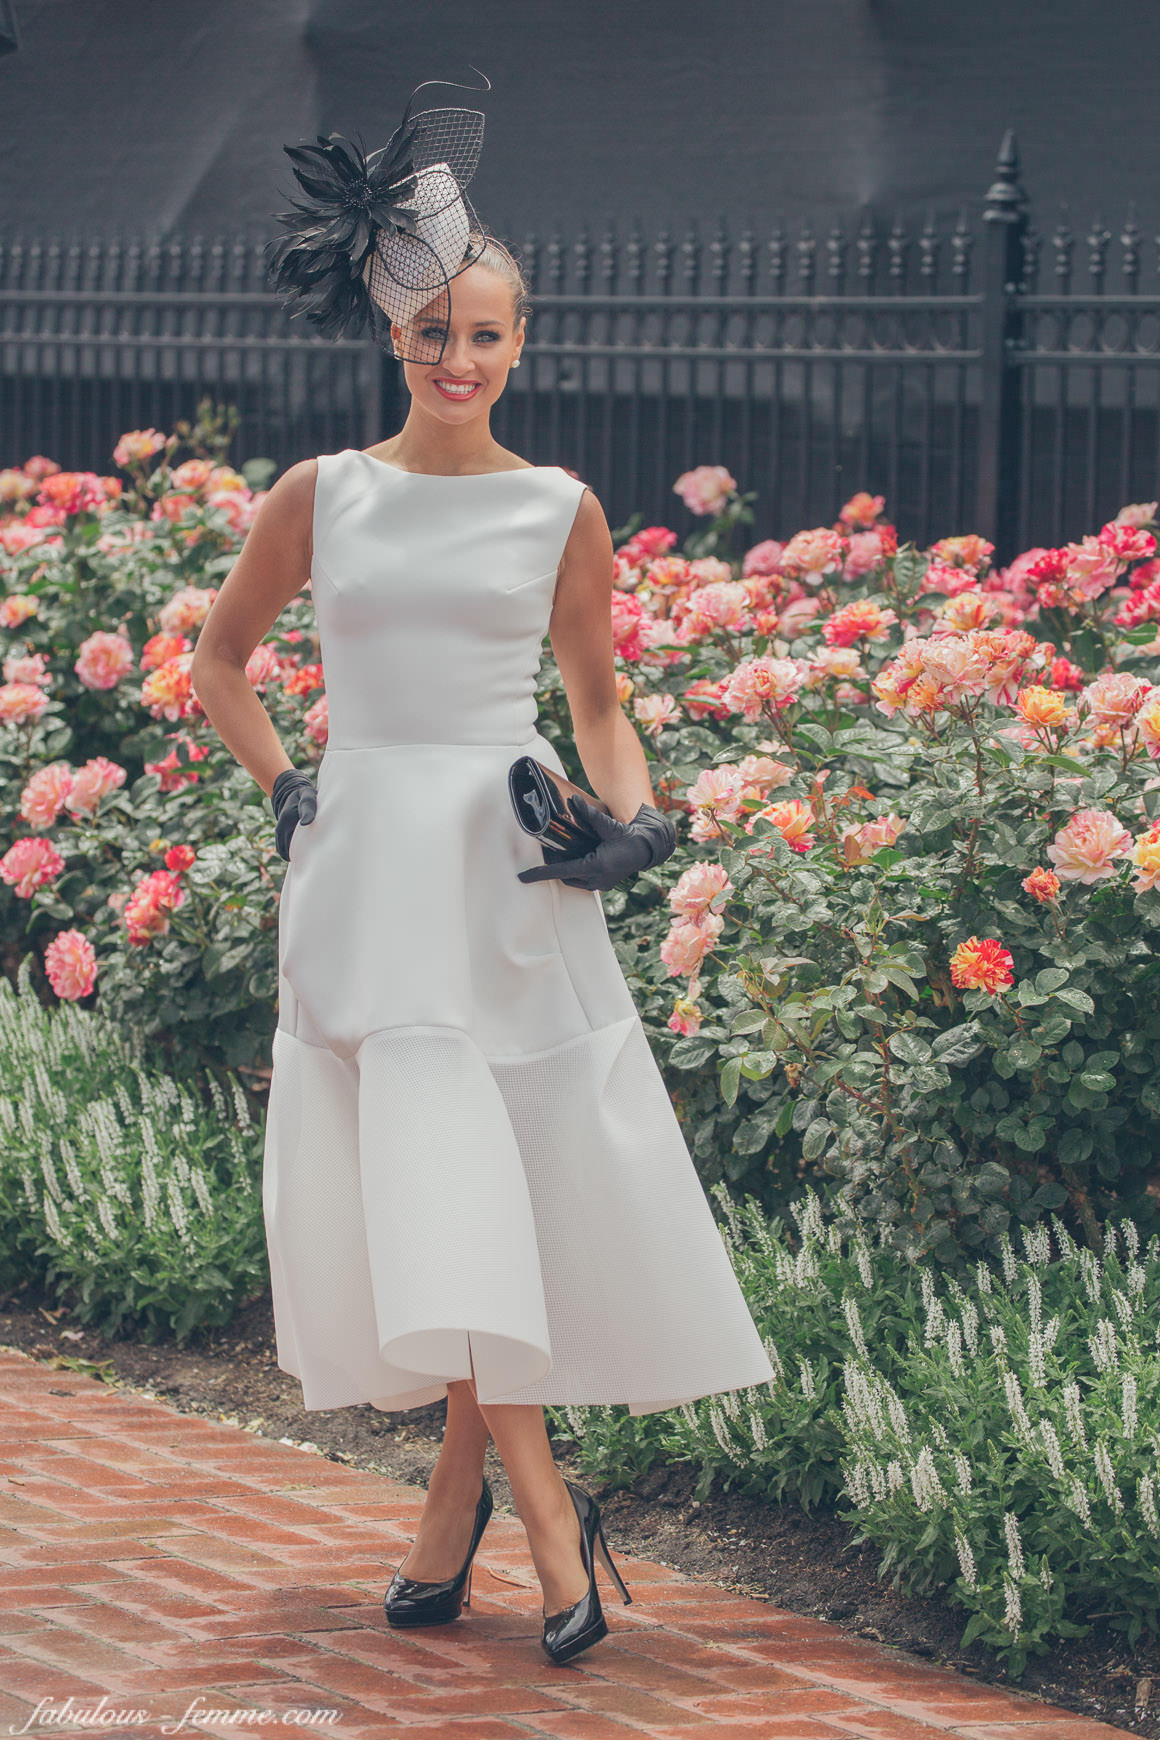 fashion competitions at the melbourne spring racing carnival - winner 2014